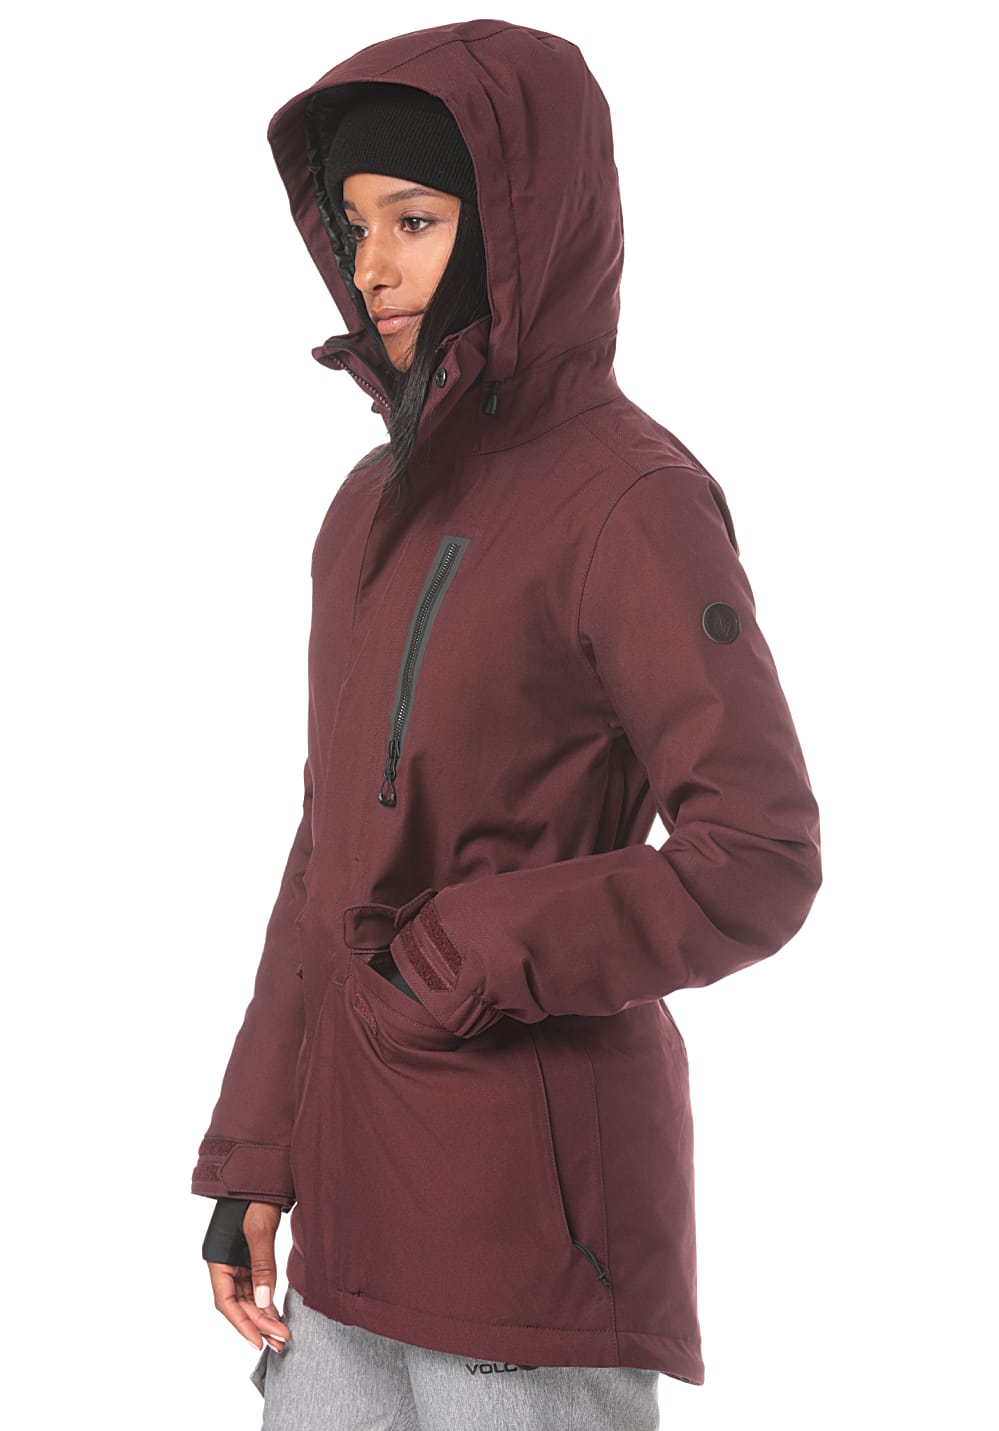 39fd8c50e Volcom Shelter 3D Stretch - Snowboard Jacket for Women - Red